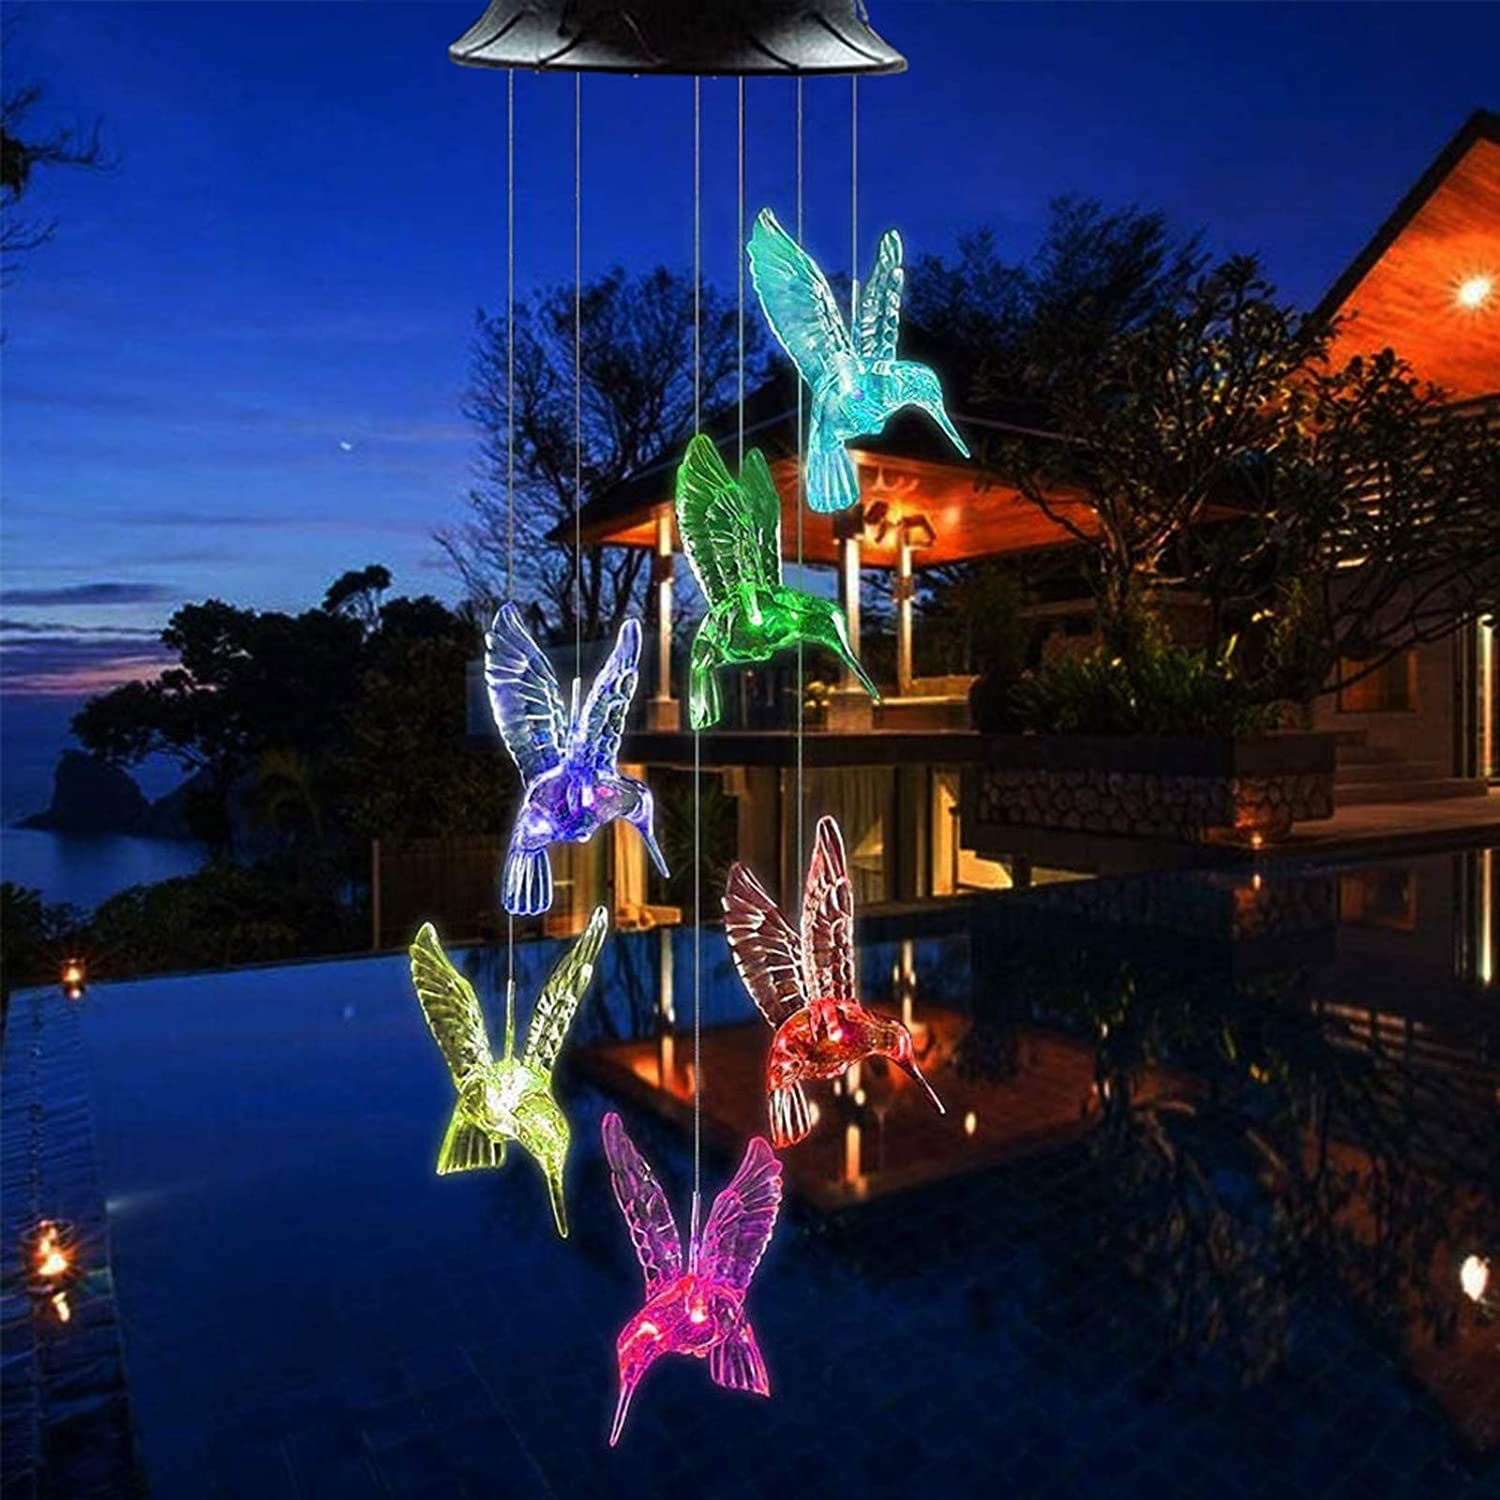 Solar Hummingbird Wind Chimes, Color Changing Solar Wind Chime Outdoor Waterproof Hummingbird LED Solar Lights, for Home/Yard/Night/Garden